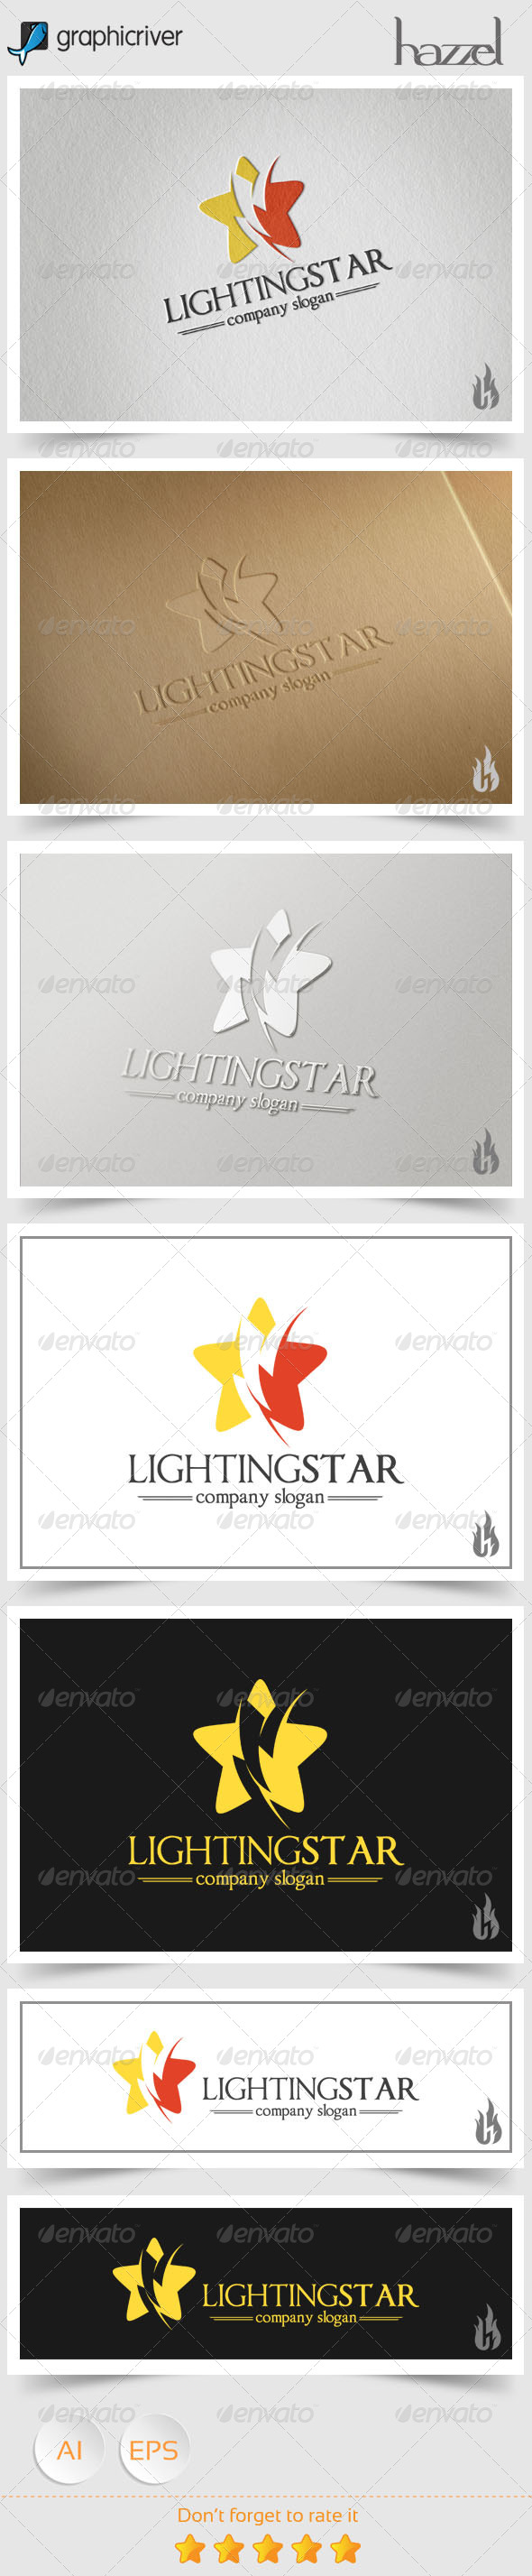 GraphicRiver Lighting Star Logo 8536175